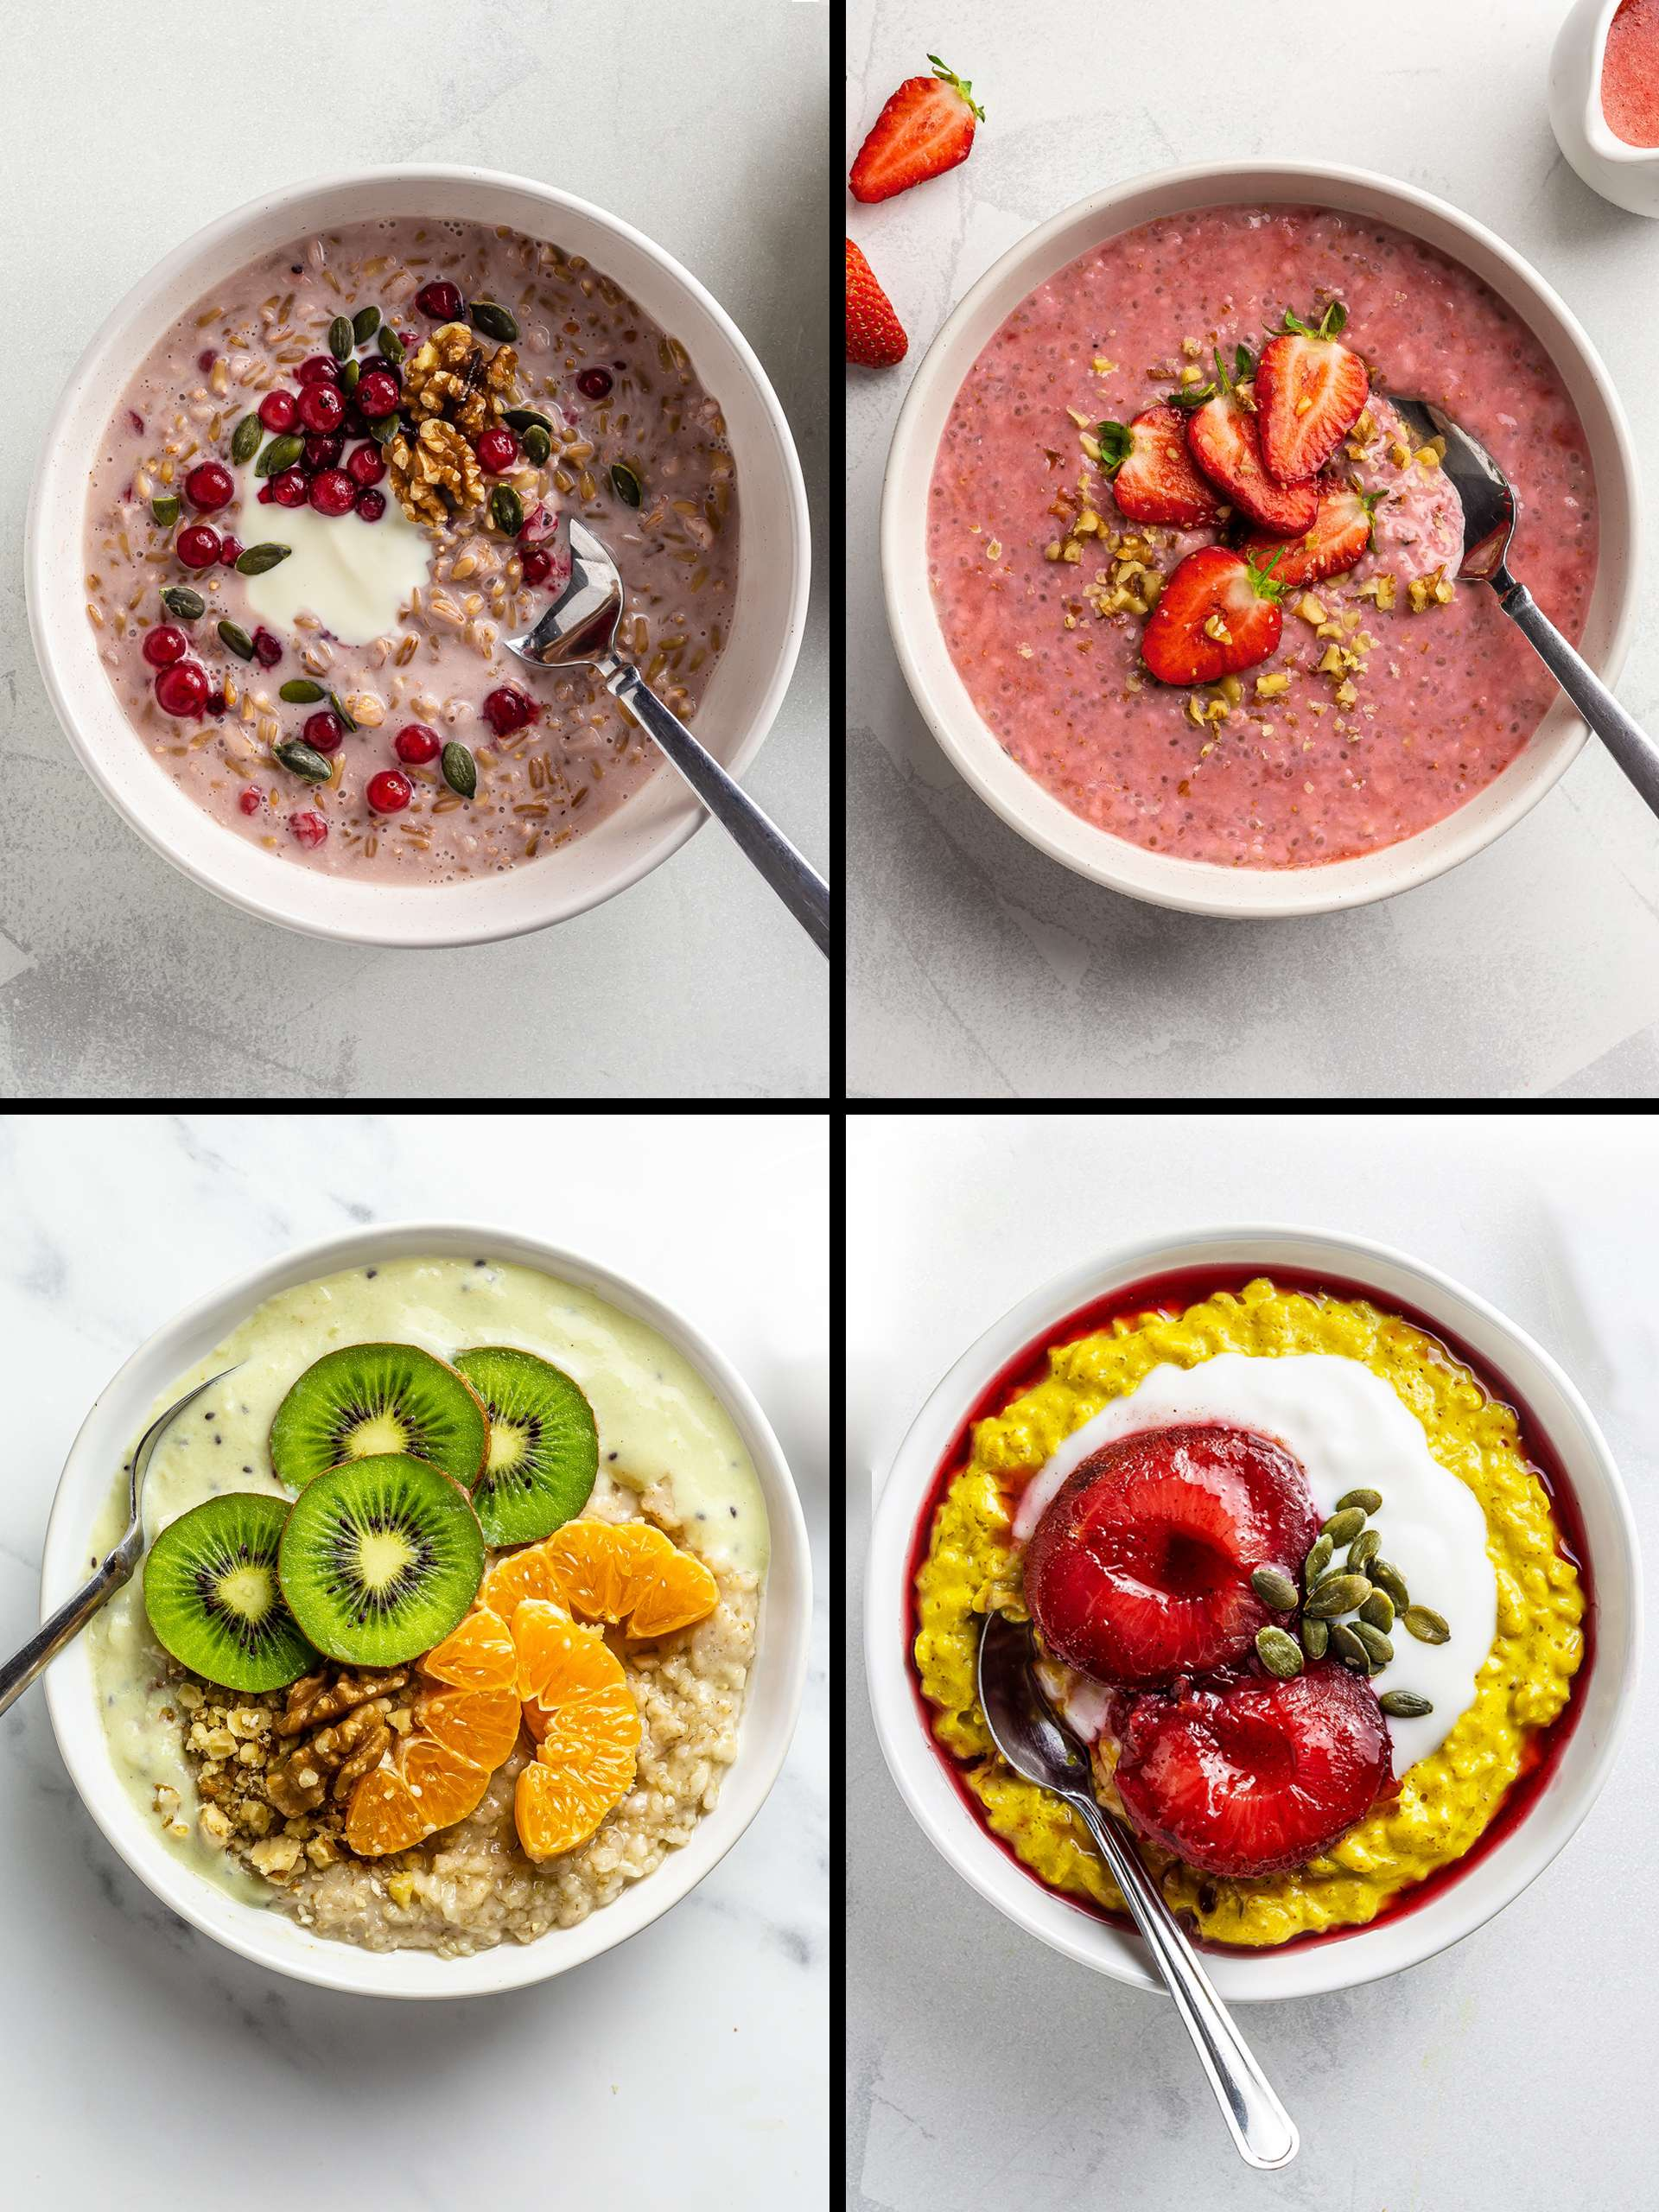 7 Ways to Jazz Up Your Morning Oatmeal